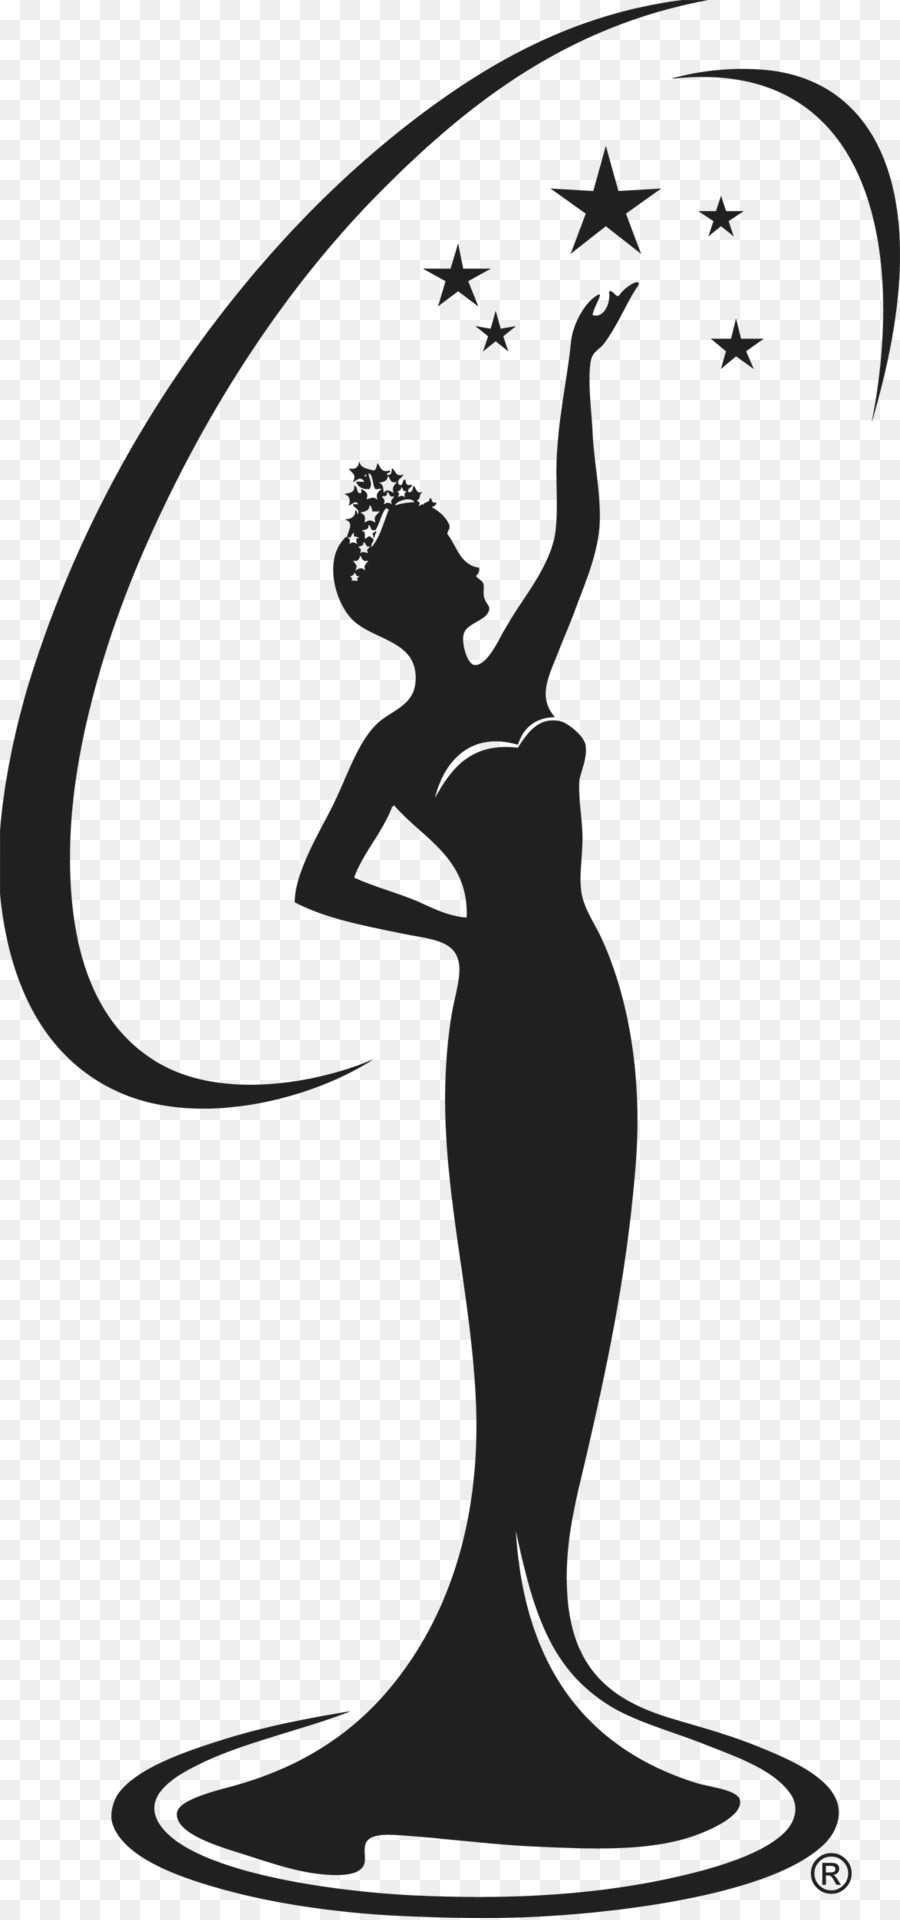 French maid Miss United States Beauty Pageant Clip art.